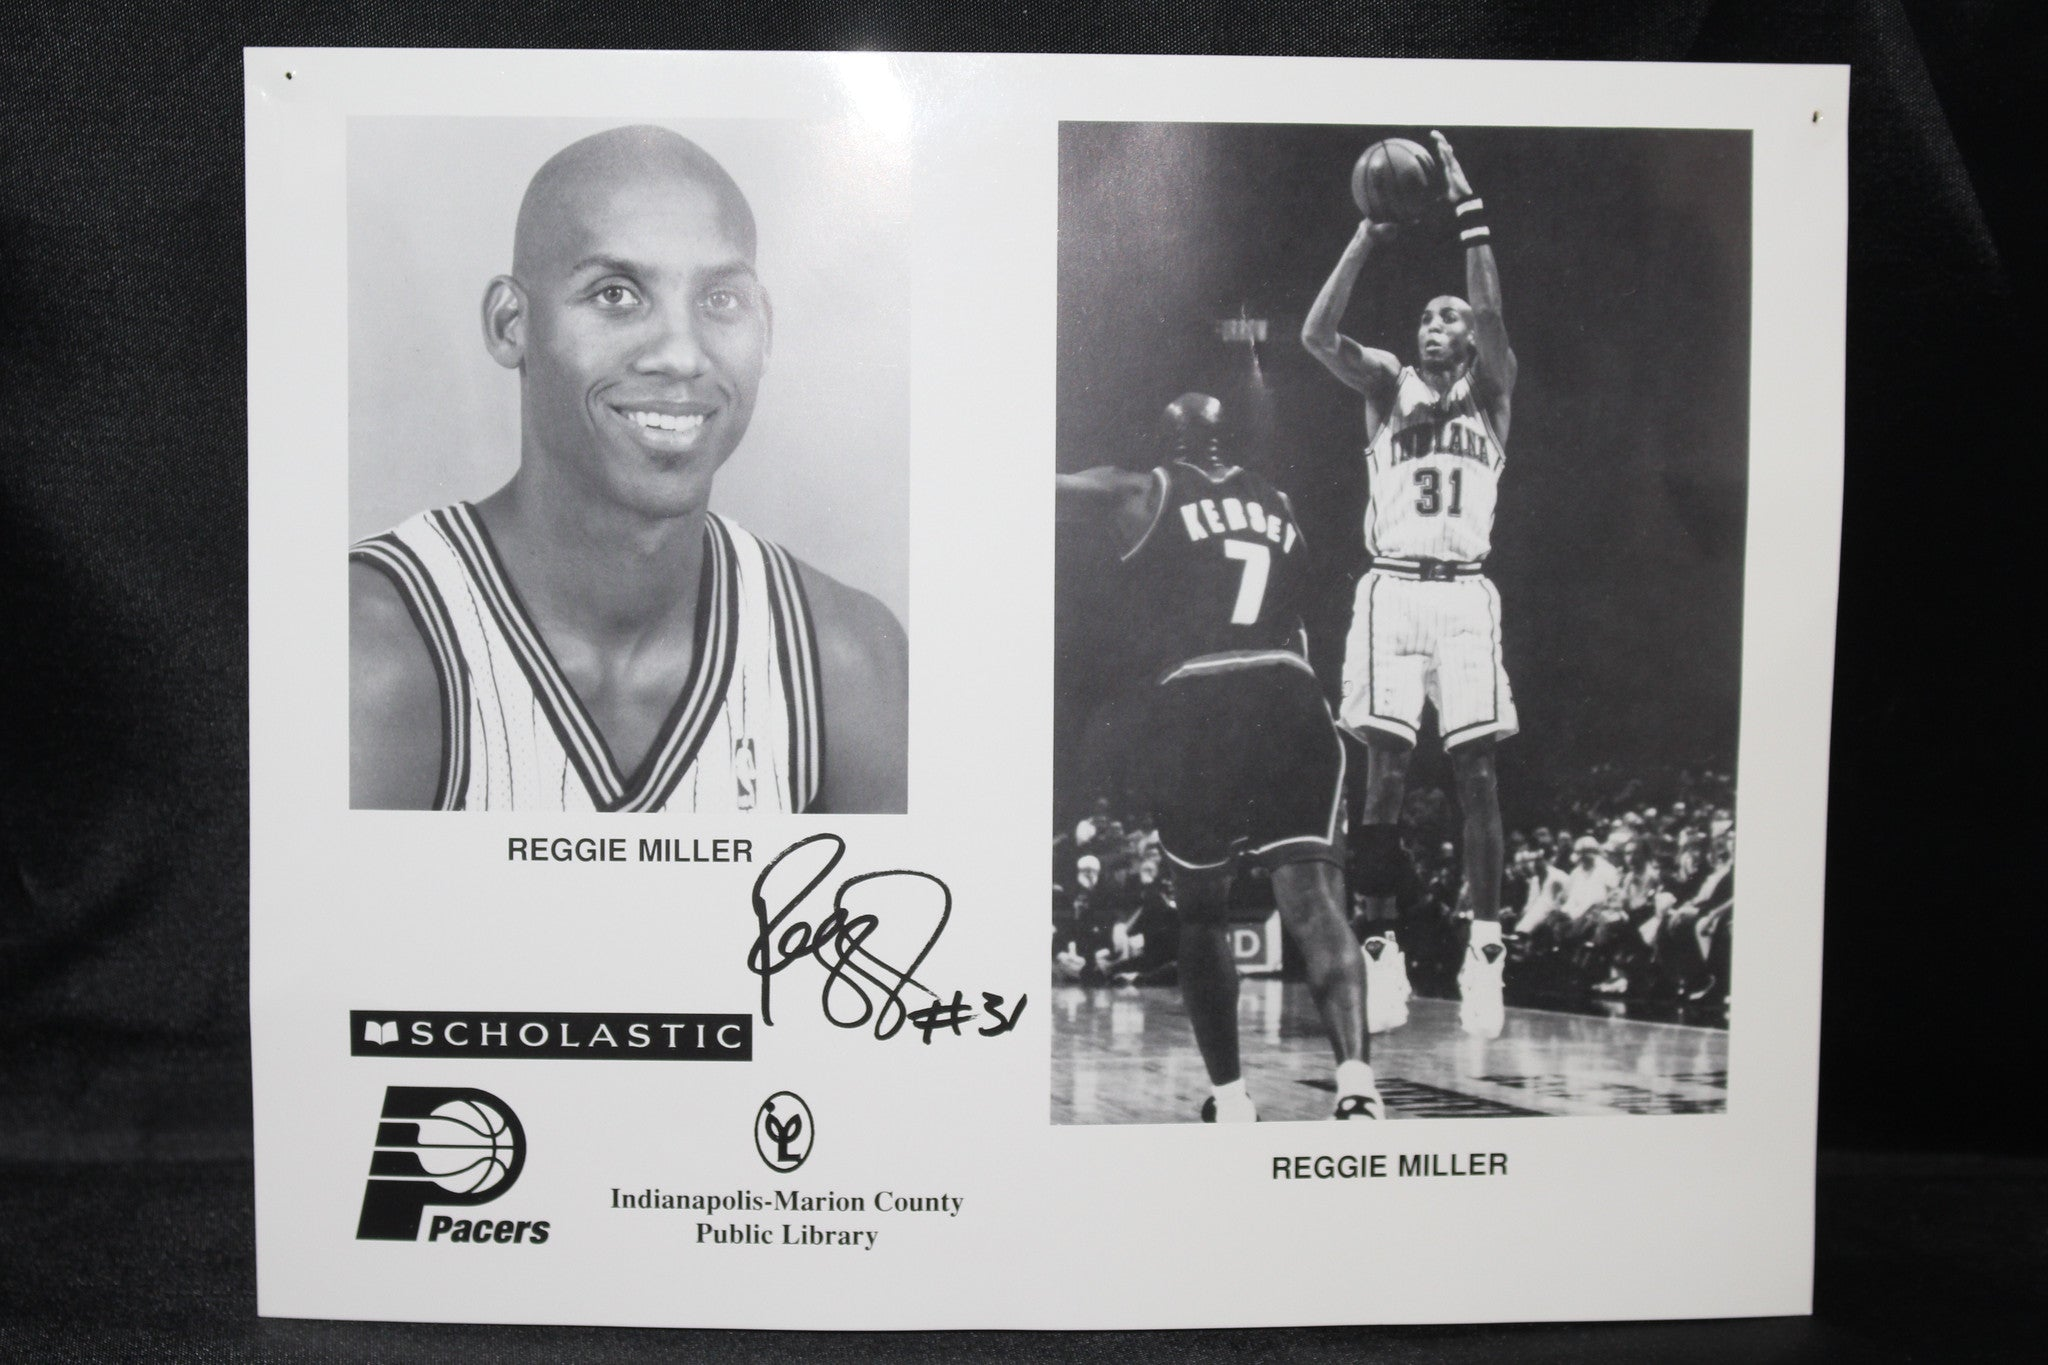 Reggie Miller Autographed Indiana Pacers Photo - Vintage Indy Sports